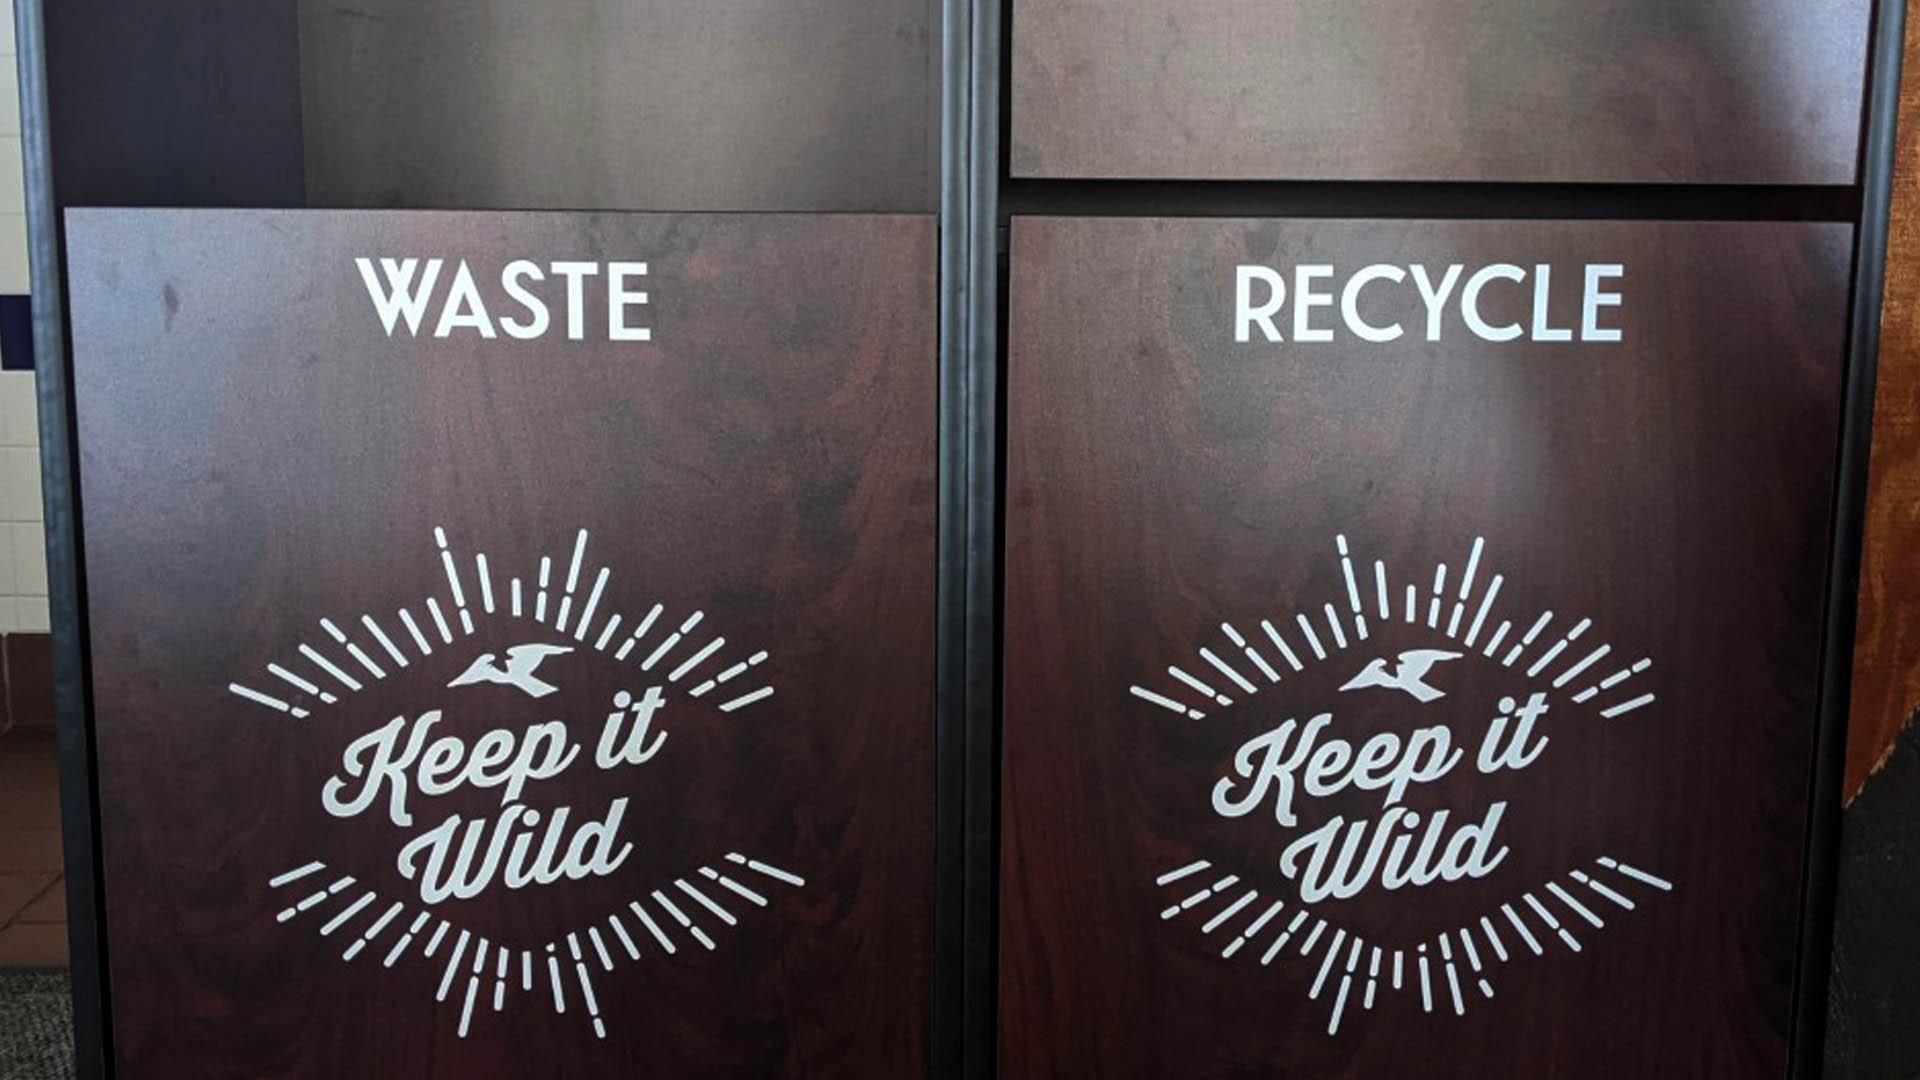 IMPROVED RECYCLING